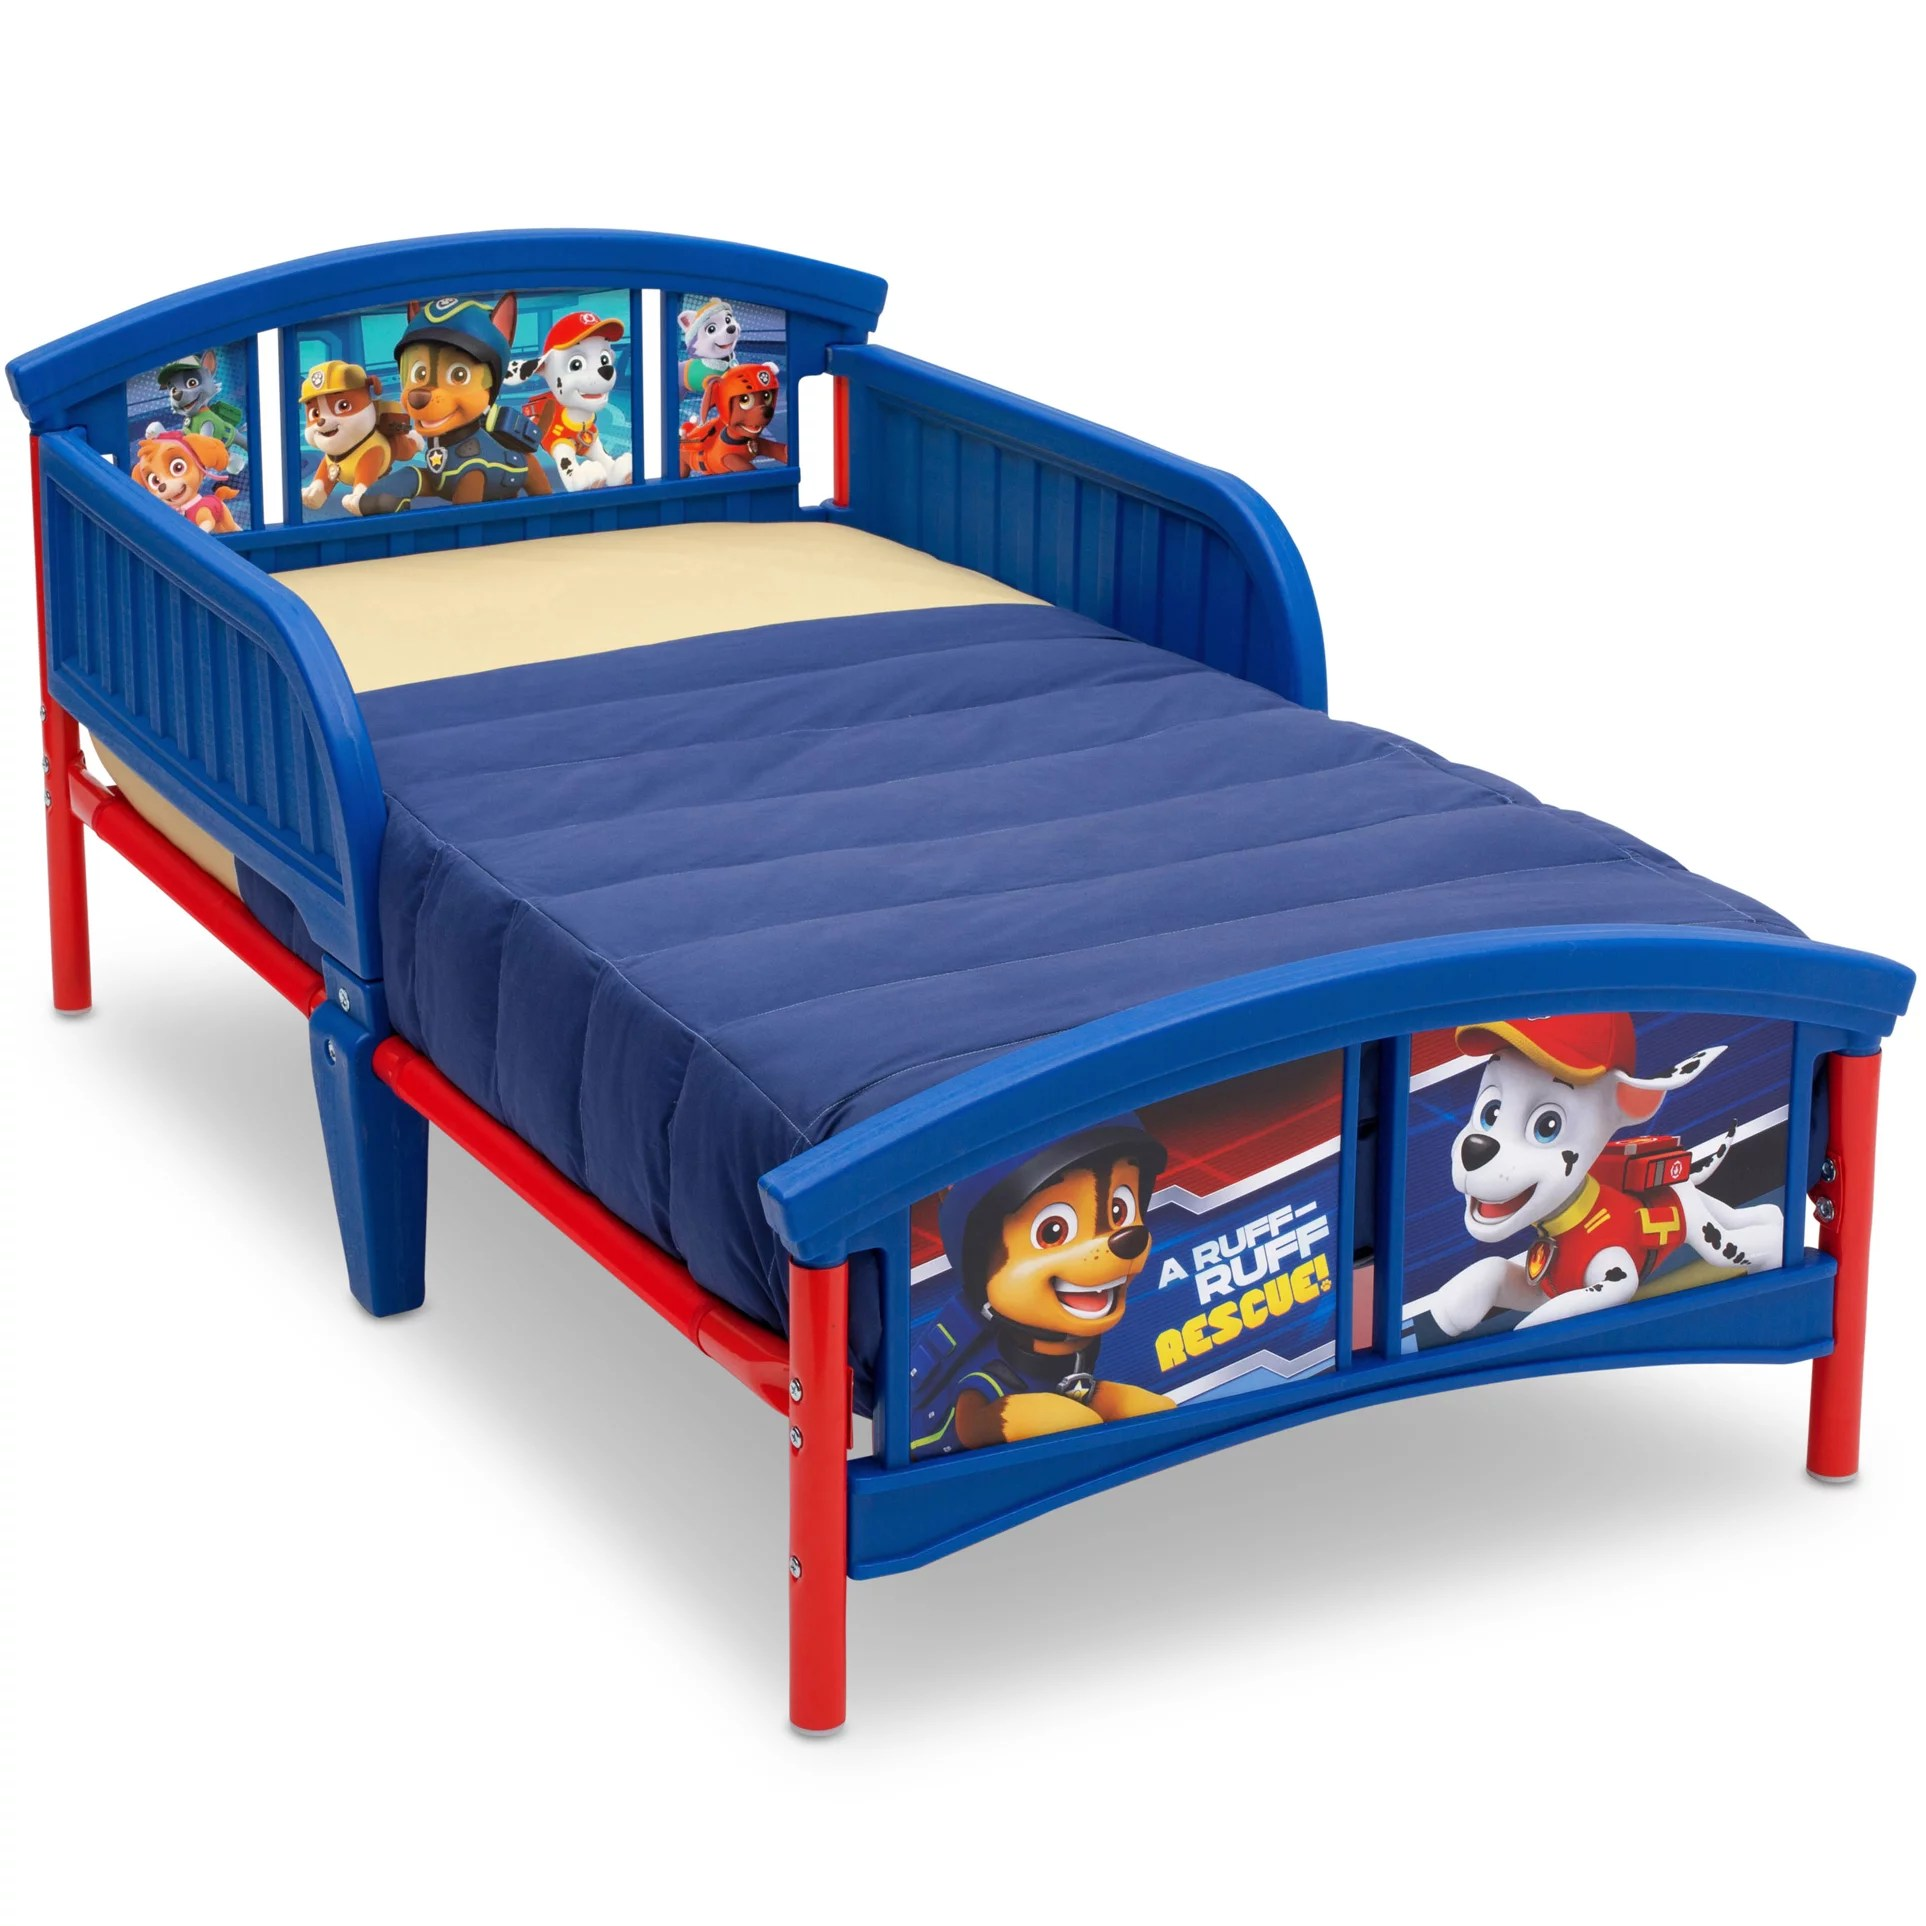 Big W Portable Cot Toddler Beds Walmart